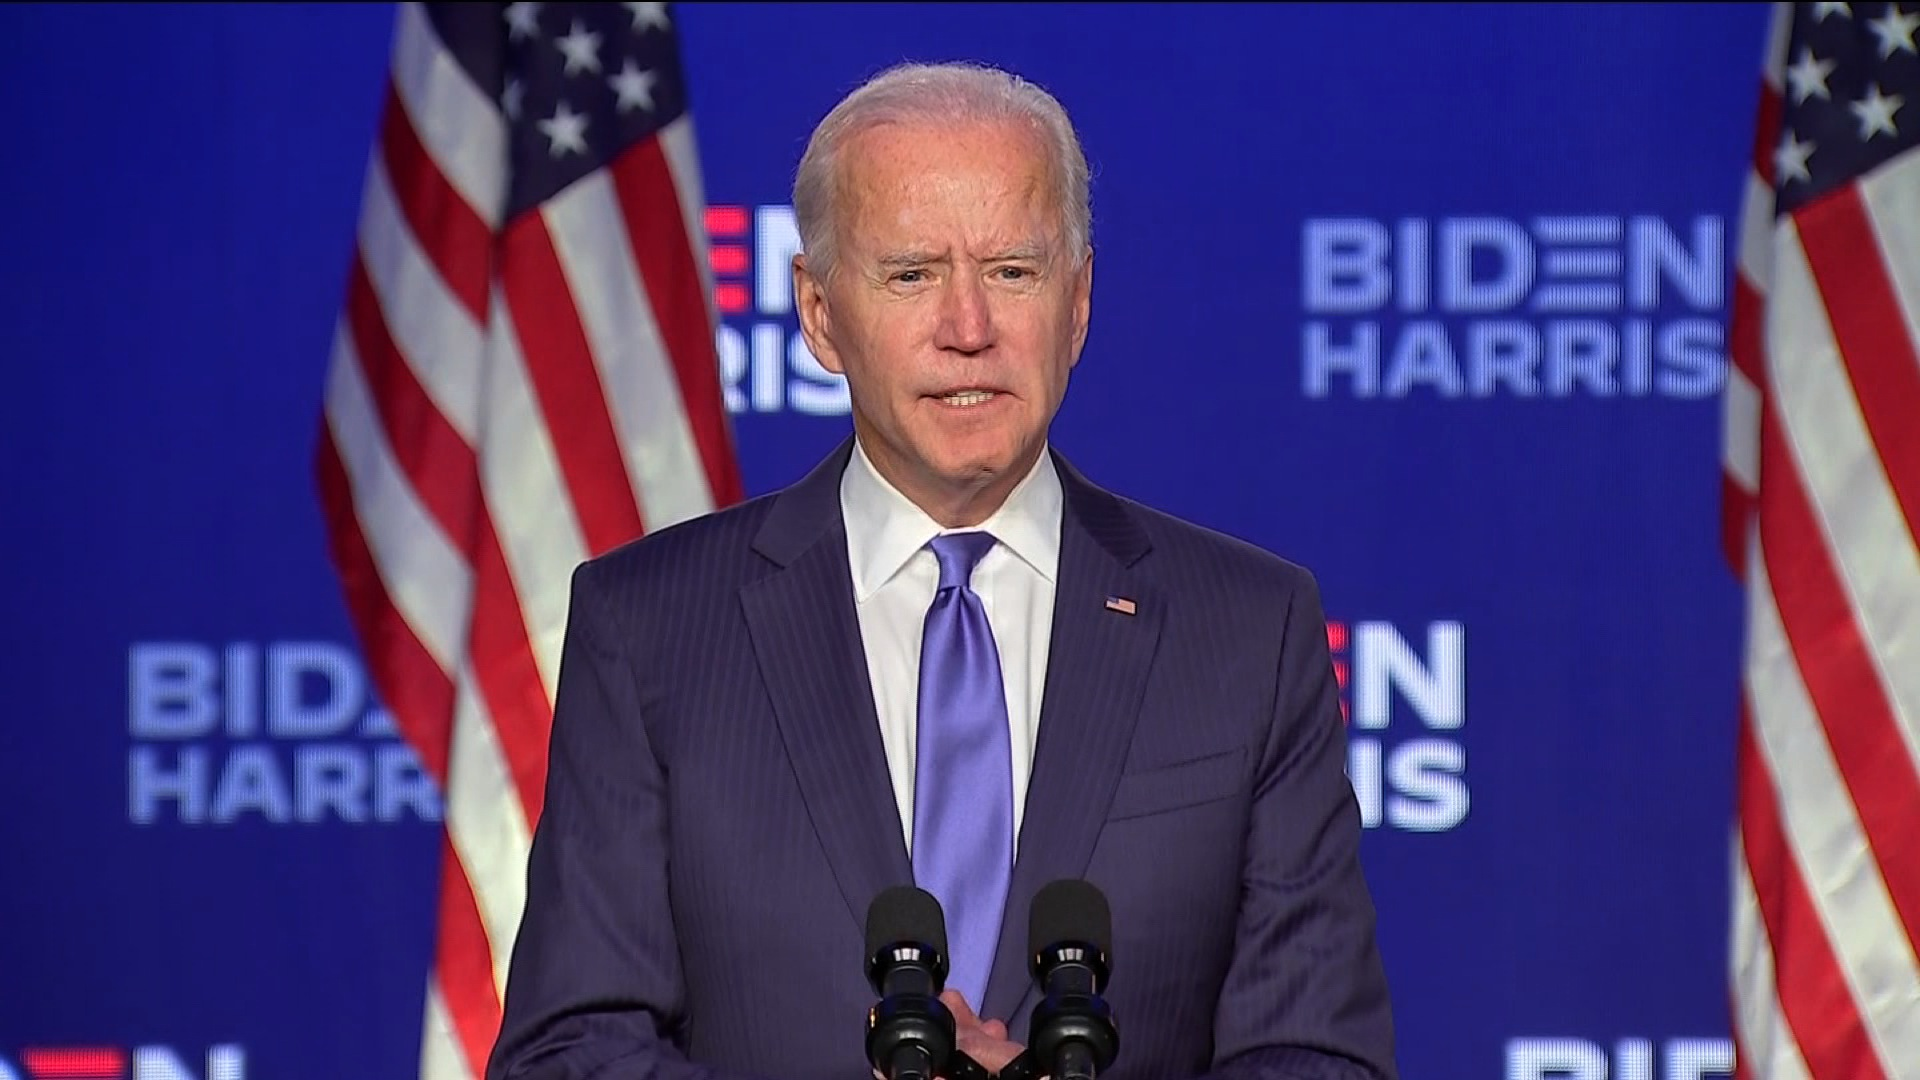 Democratic presidential candidate Joe Biden speaks in Wilmington, Delaware.